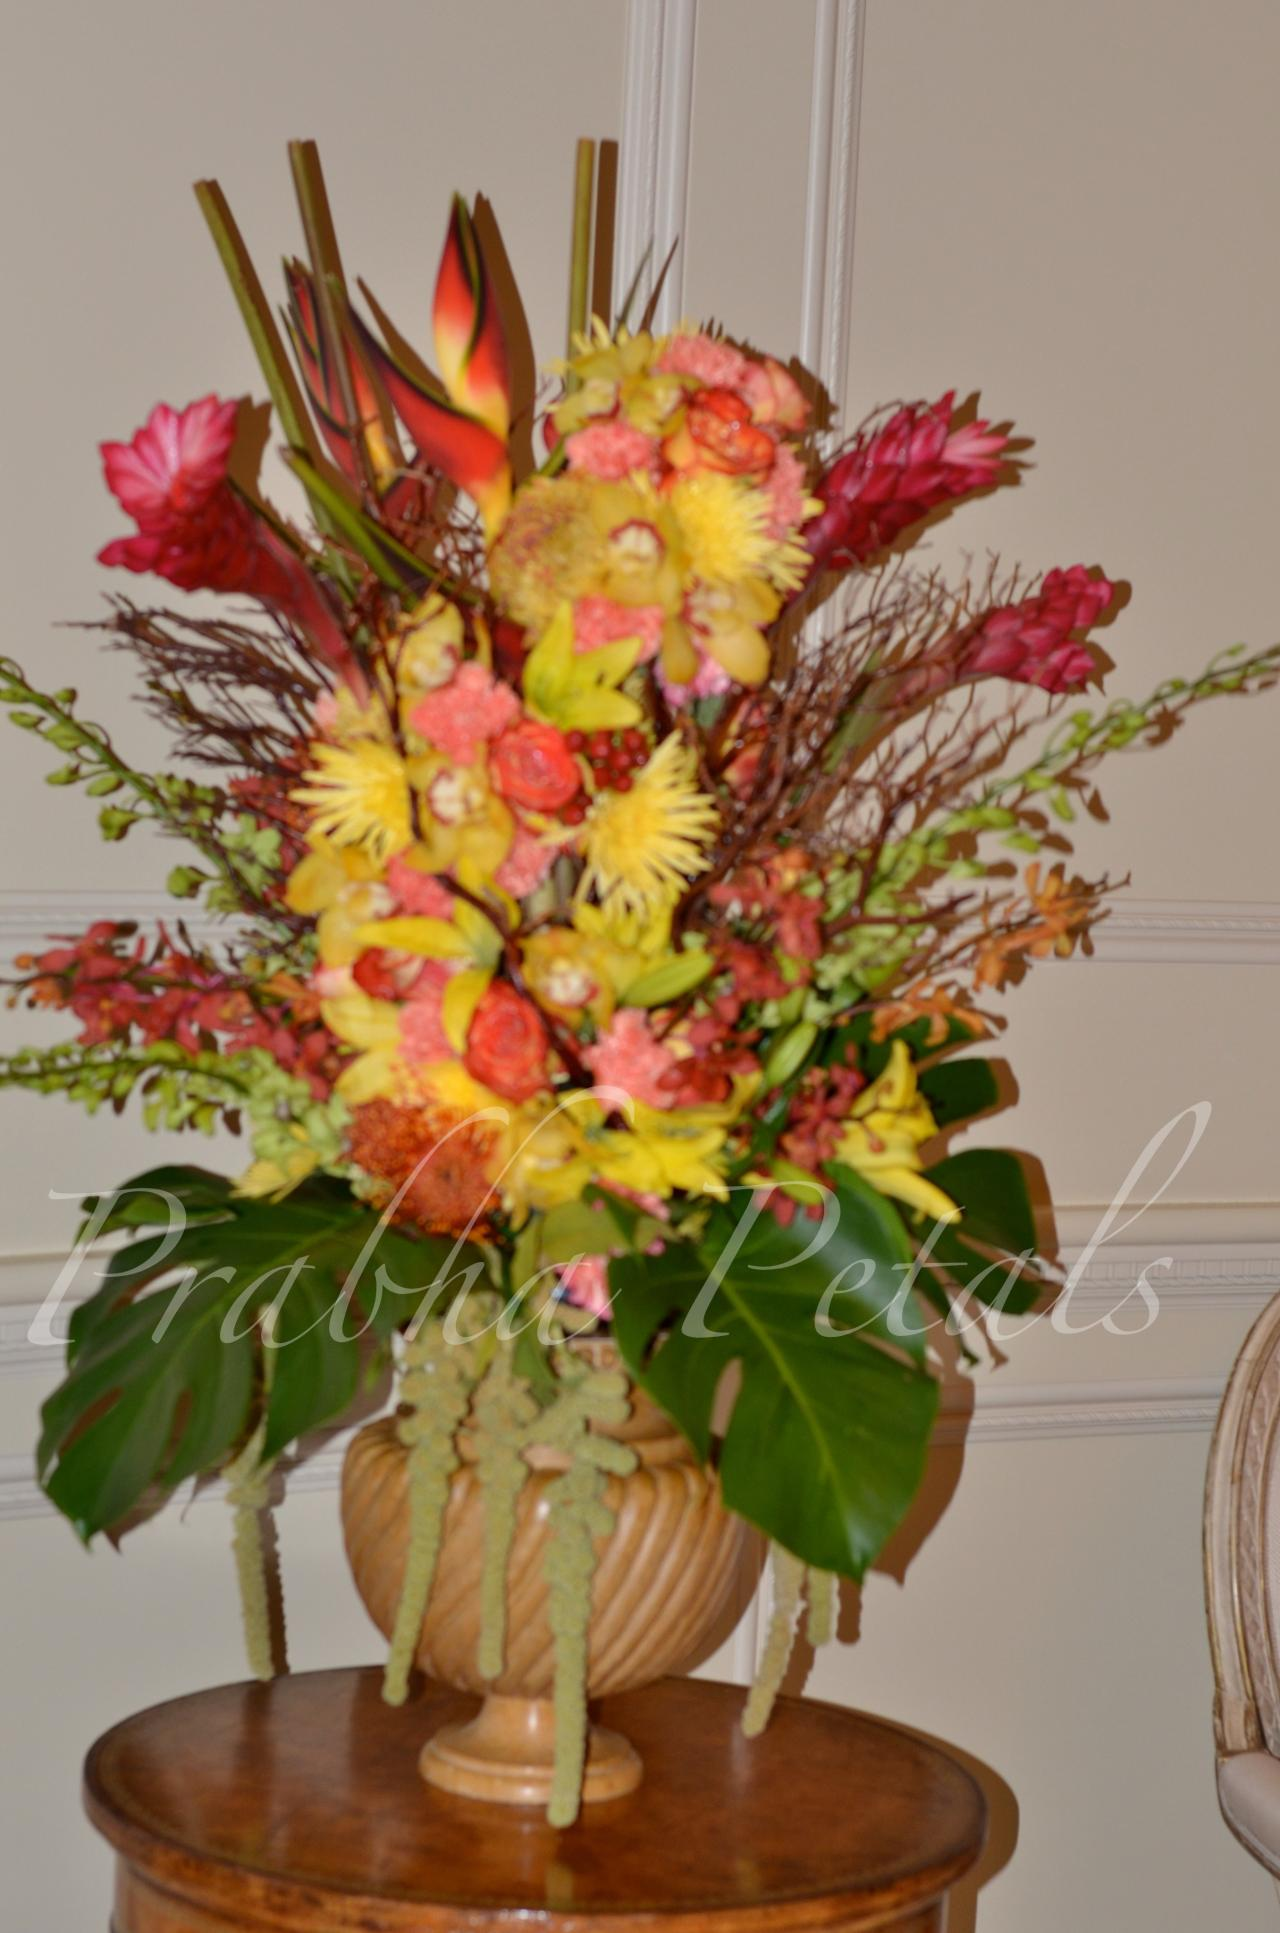 Prabha petals floral decor for Foyer flower arrangement